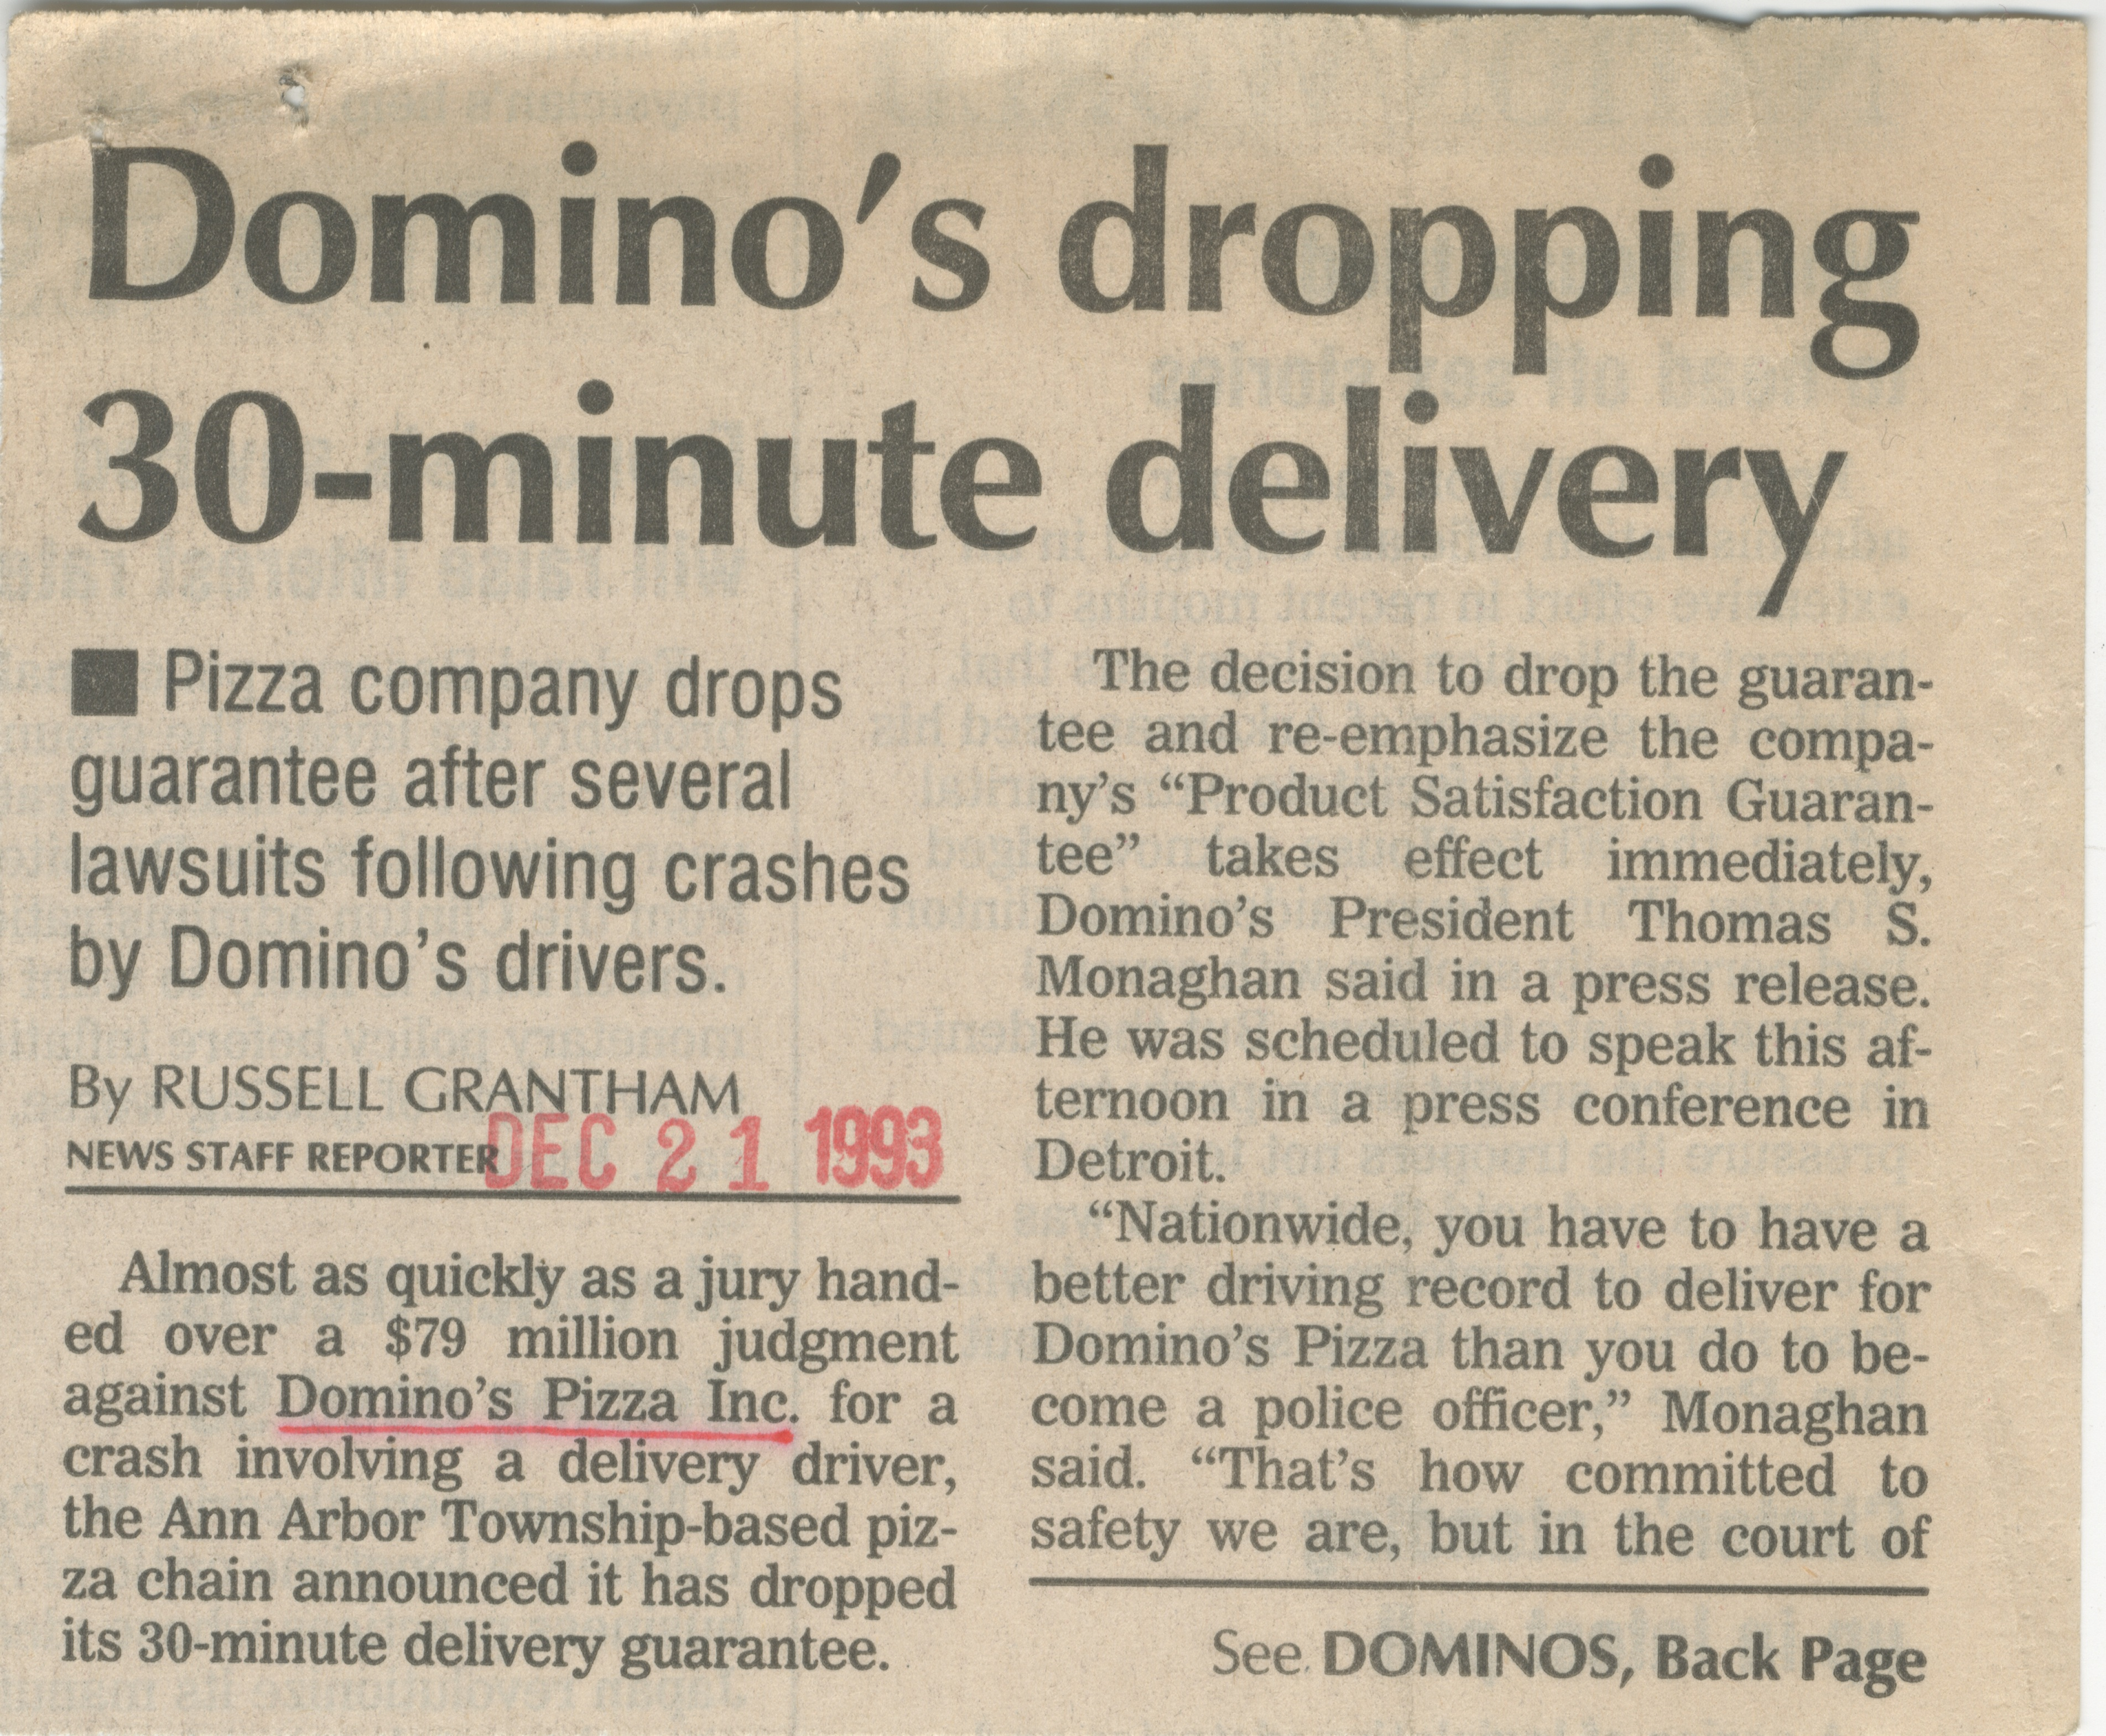 Domino's Dropping 30-Minute Delivery image